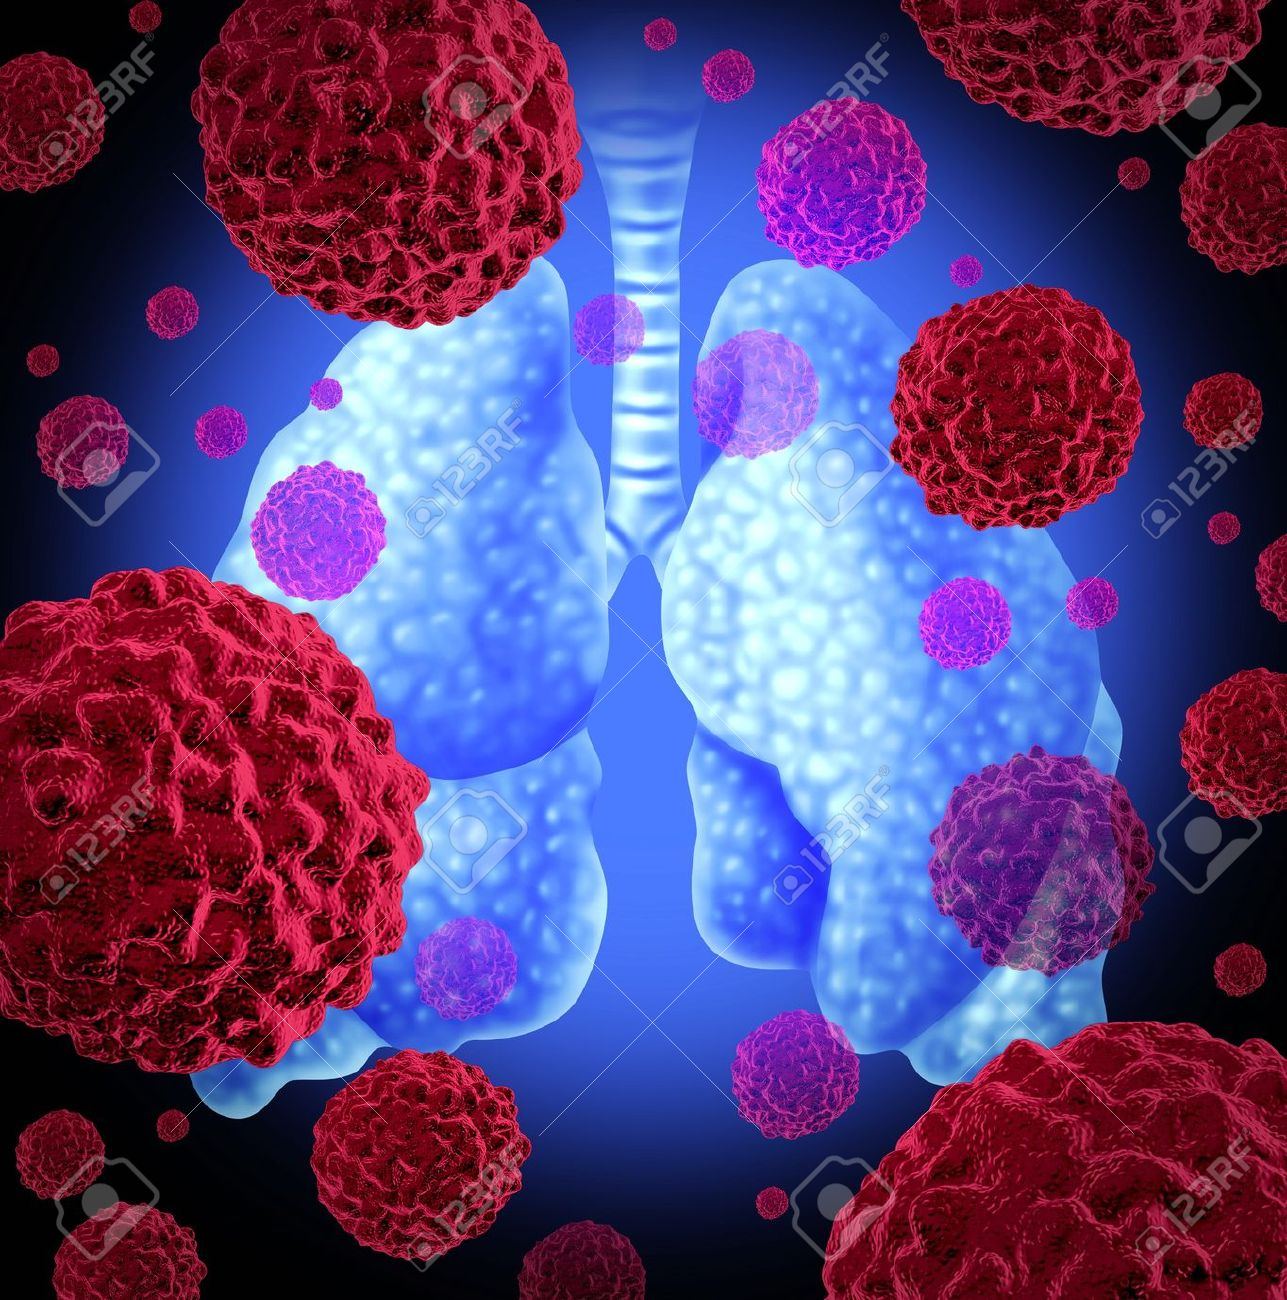 Human lung cancer organ as a medical symbol of a malignant tumor red cancer cell disease as a cancerous growth spreading through the respiratory system caused by smoking and other environmental toxic reasons. Stock Photo - 12024528